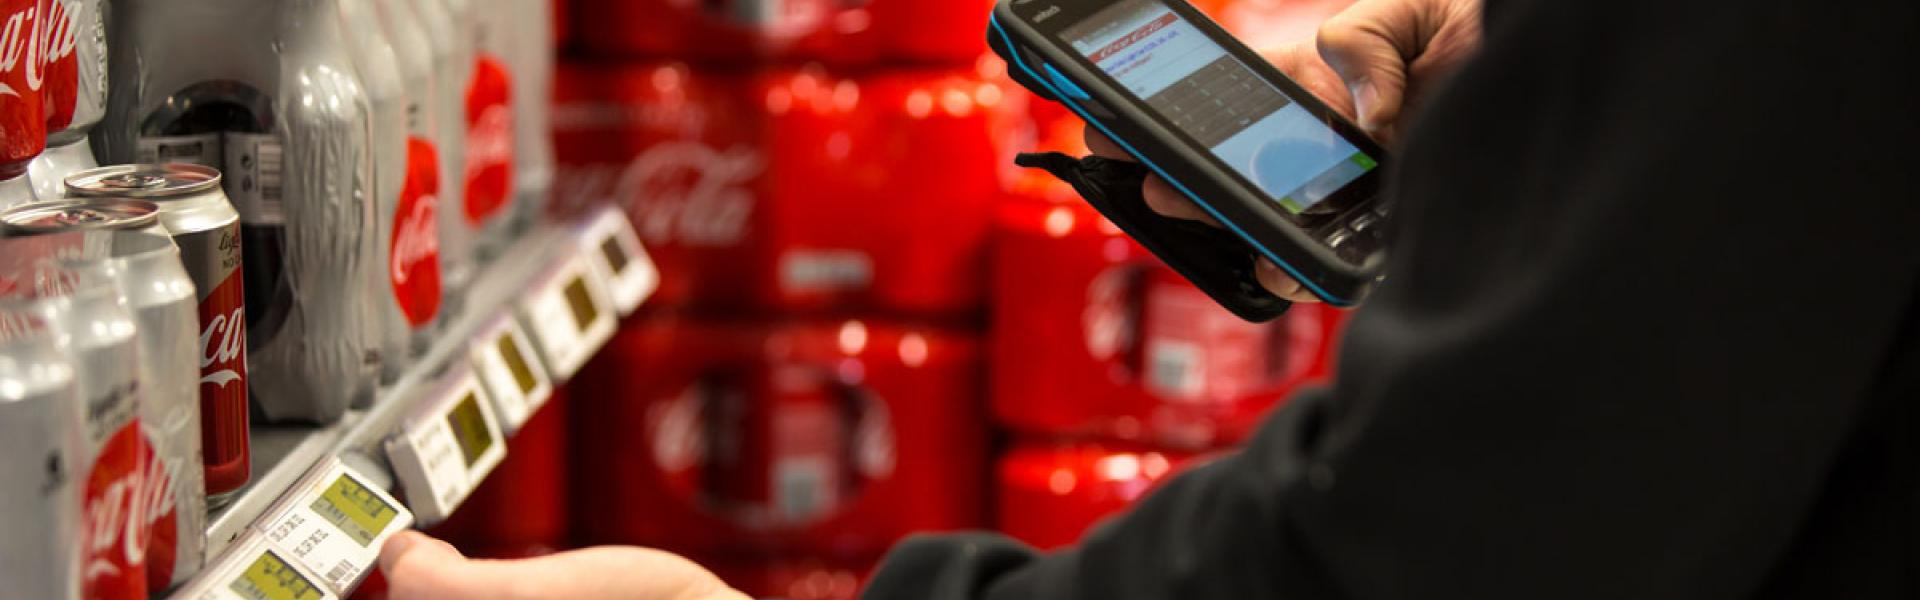 Data Collecting Coca Cola